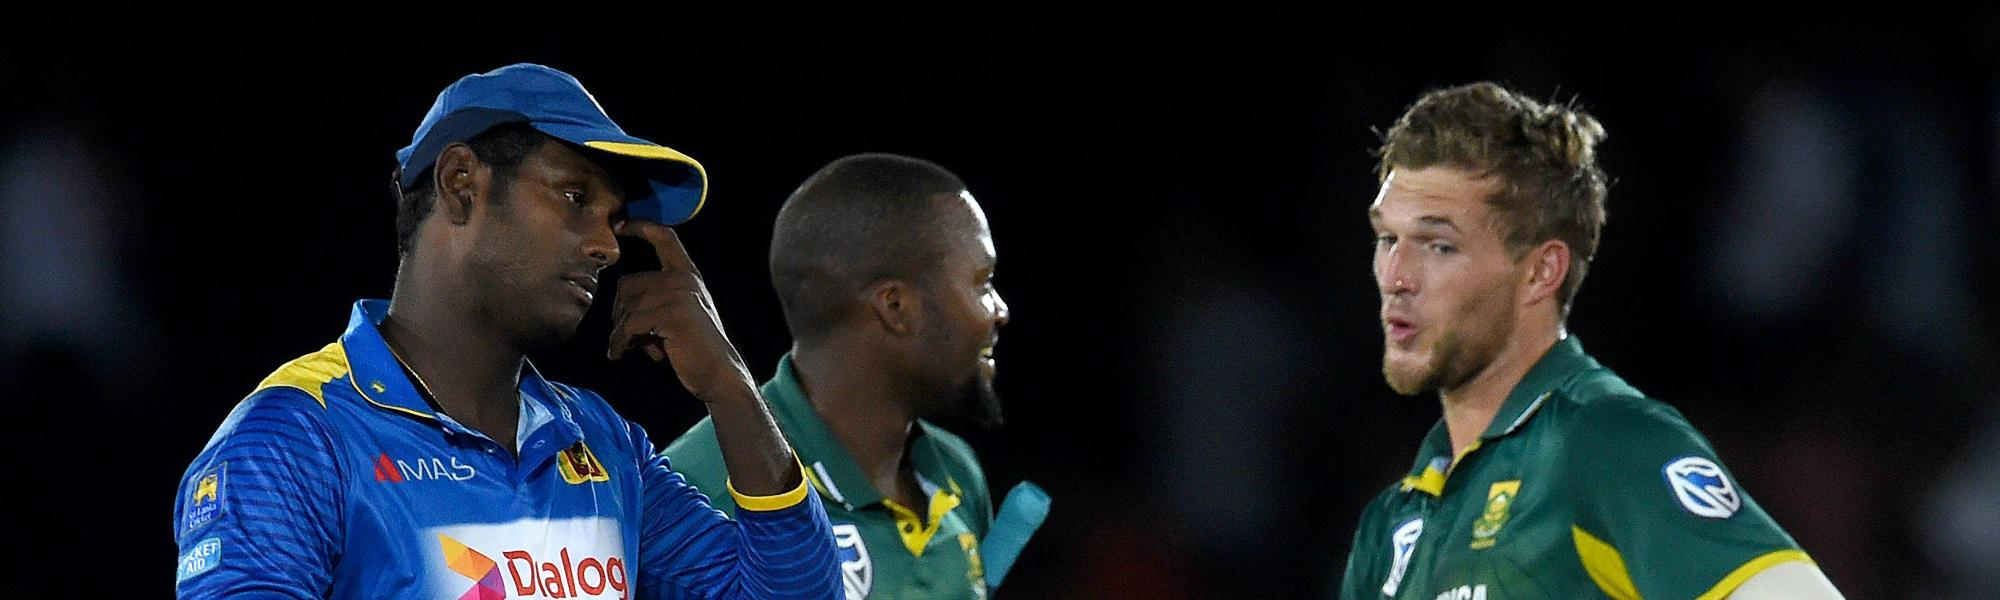 South Africa have taken a 2-0 lead in the series